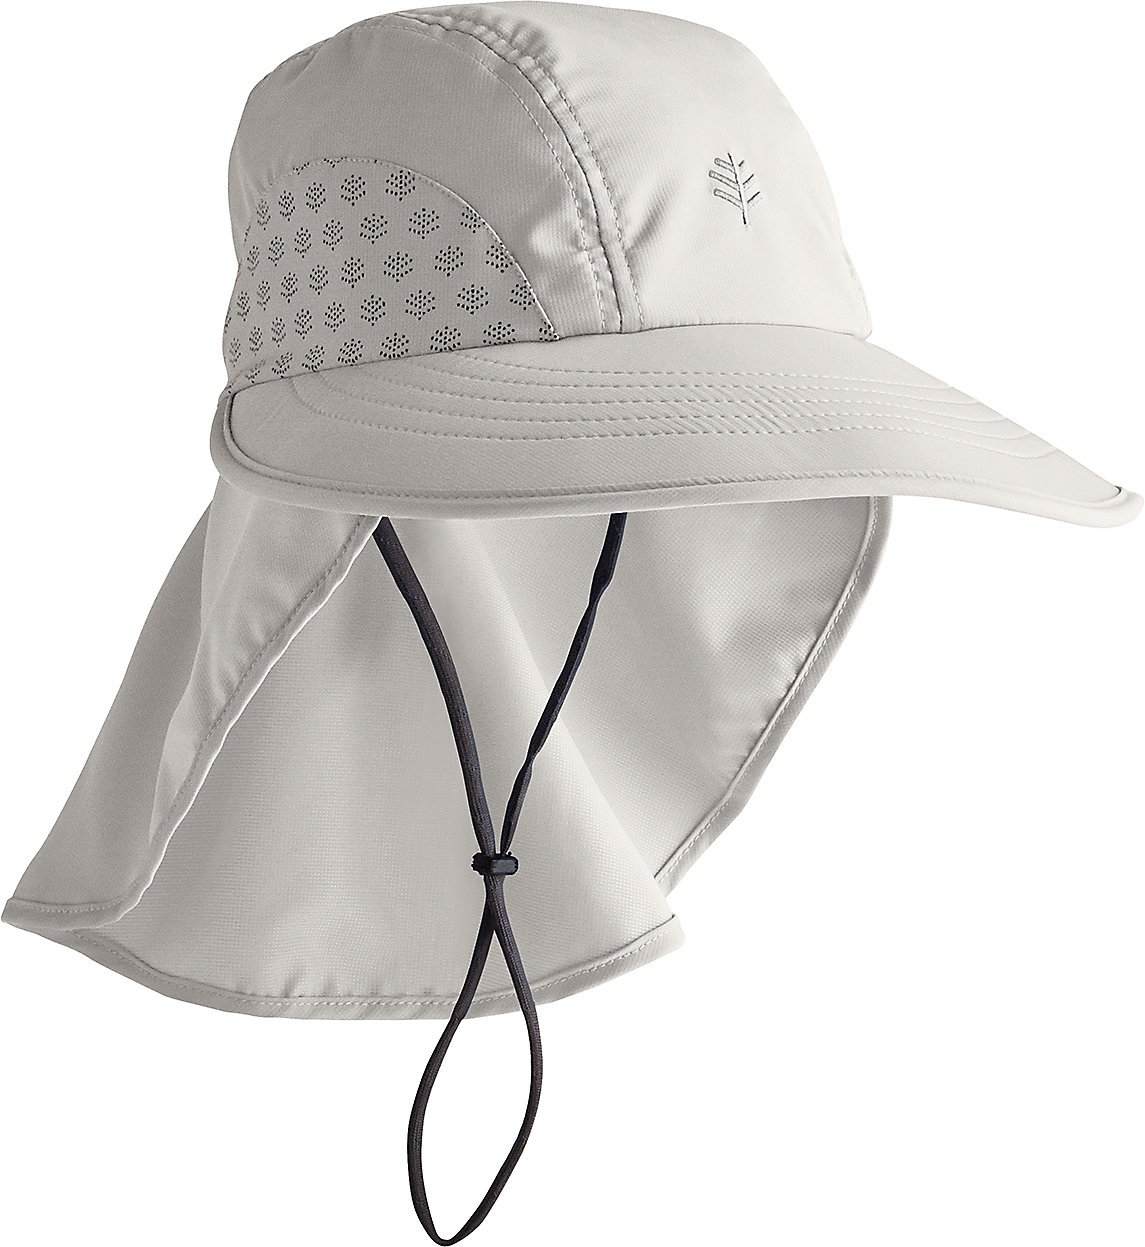 Coolibar UPF 50+ Kids' Explorer Hat - Sun Protective (Small/Medium- Light Grey)